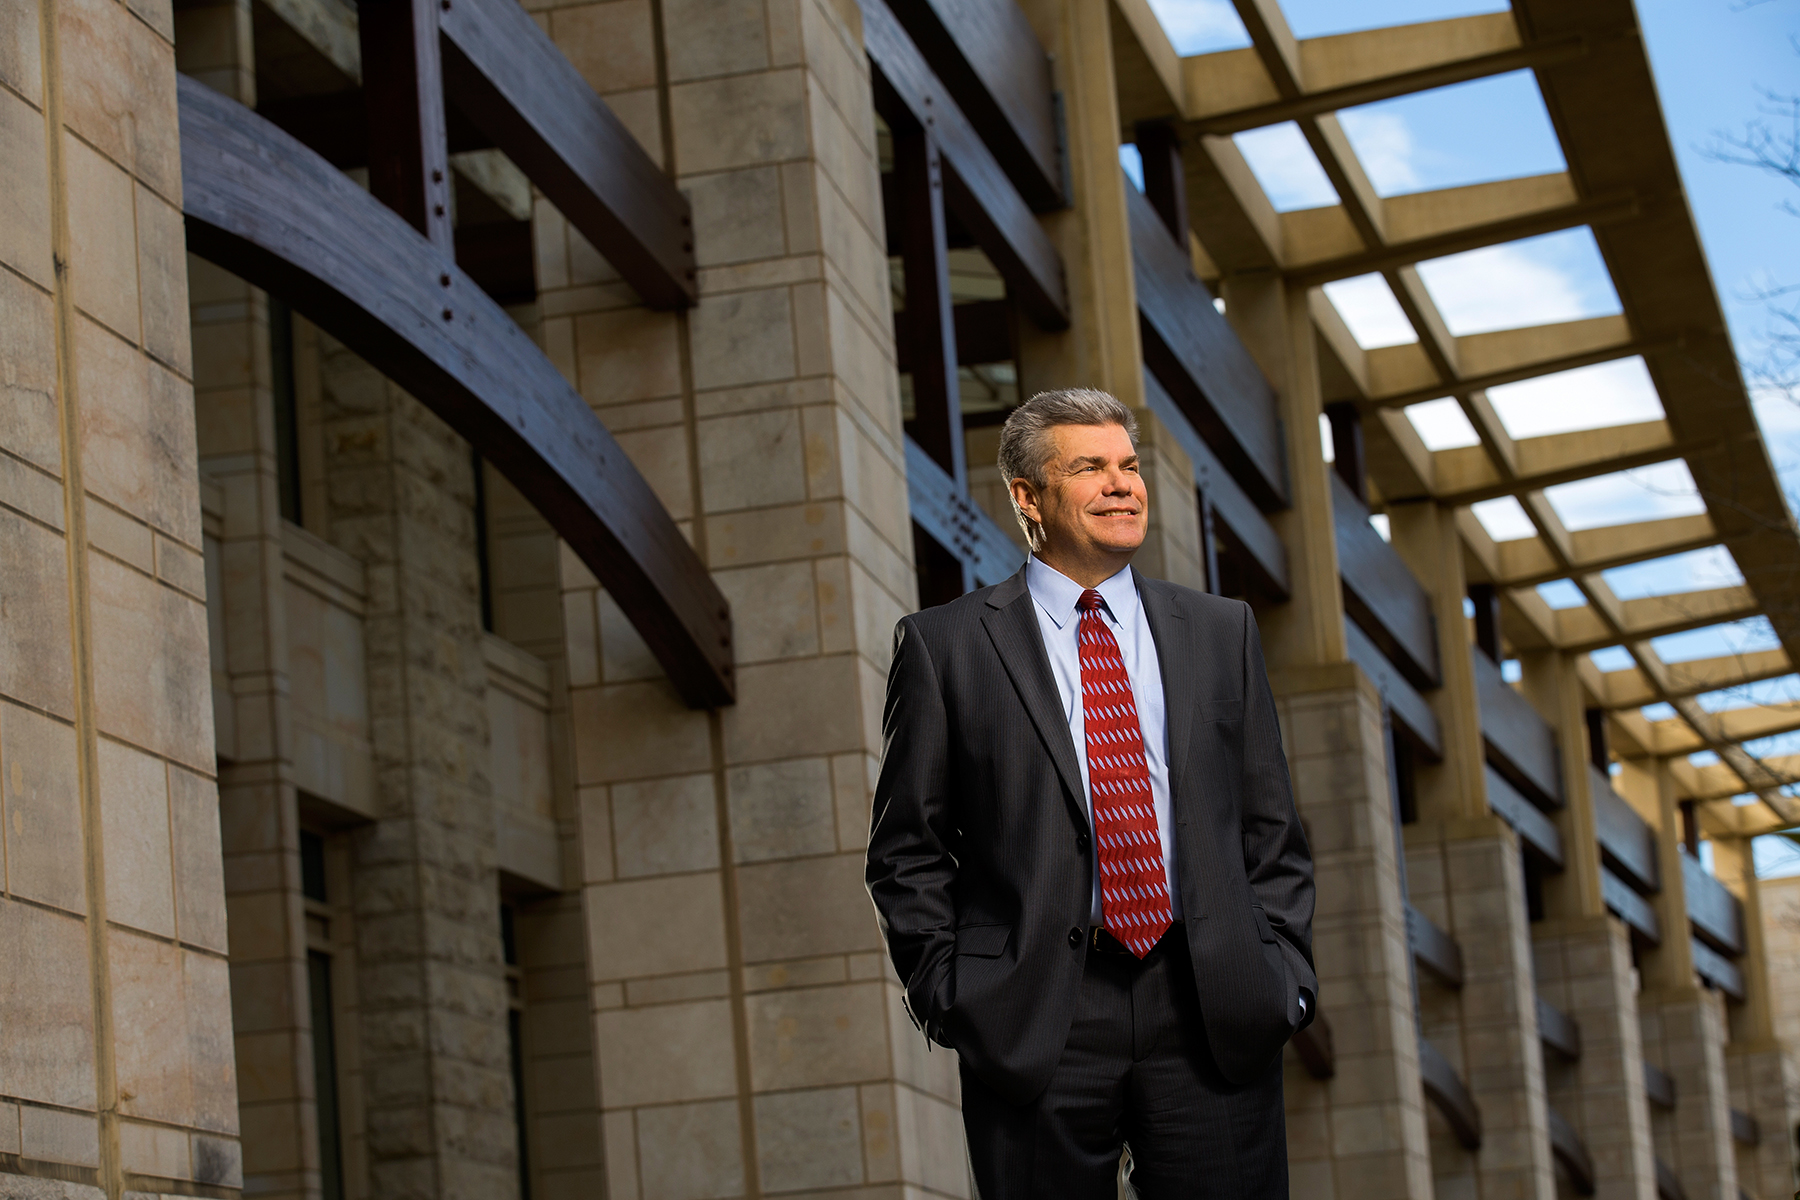 Executive Corporate Portrait Photography of John Ragland, TIAA-CREF's Senior Director, Global Real Estate, at the Charlotte, North Carolina campus.Charlotte Photographer - PatrickSchneiderPhoto.com